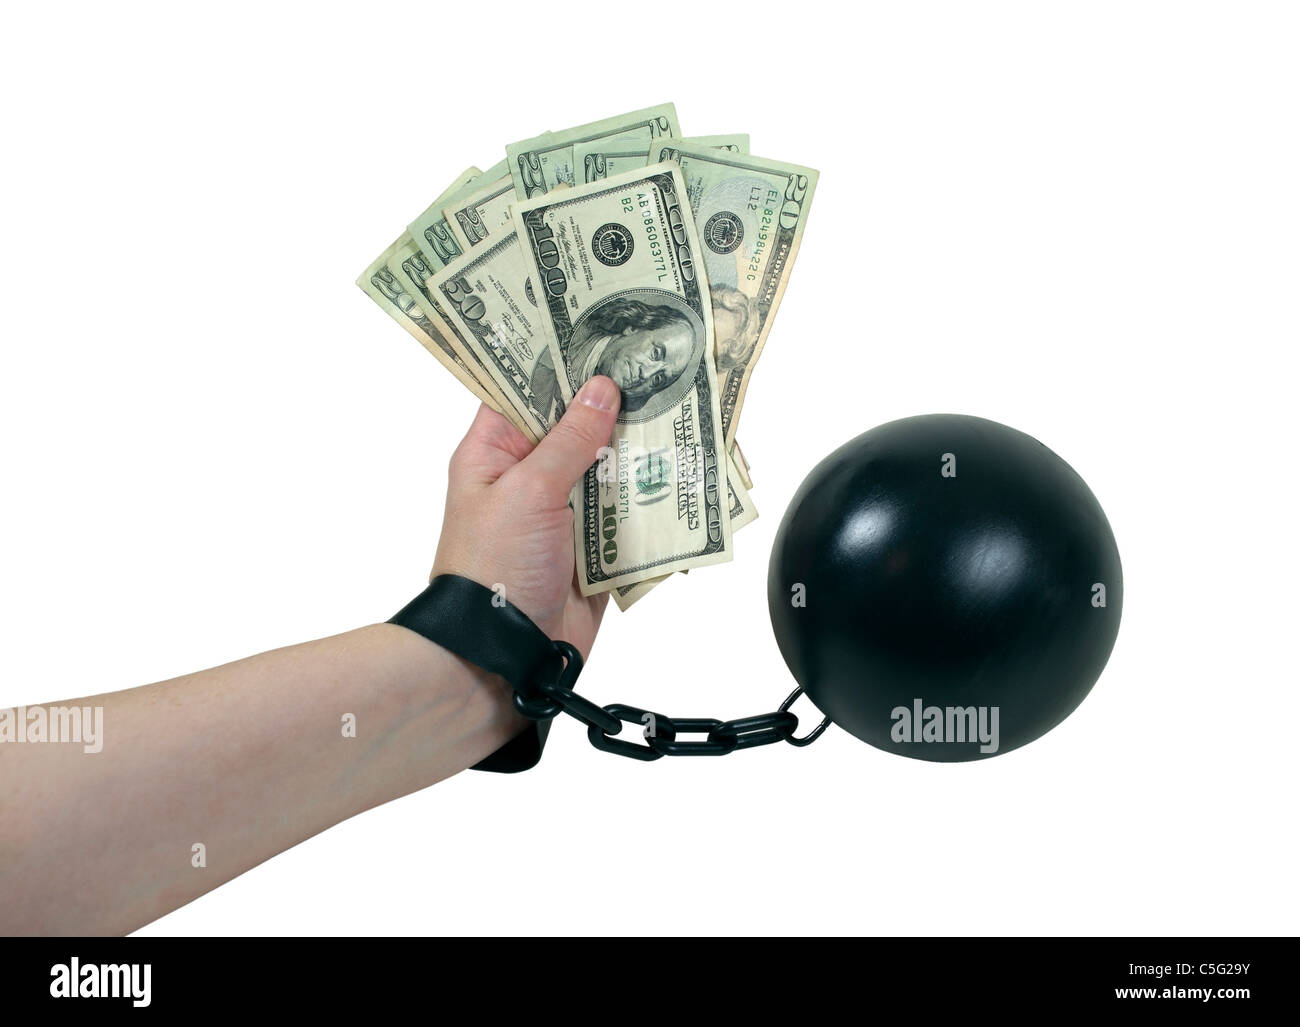 Money Issues shown by a model holding a large amount of cash while bound by a ball and chain - path included - Stock Image